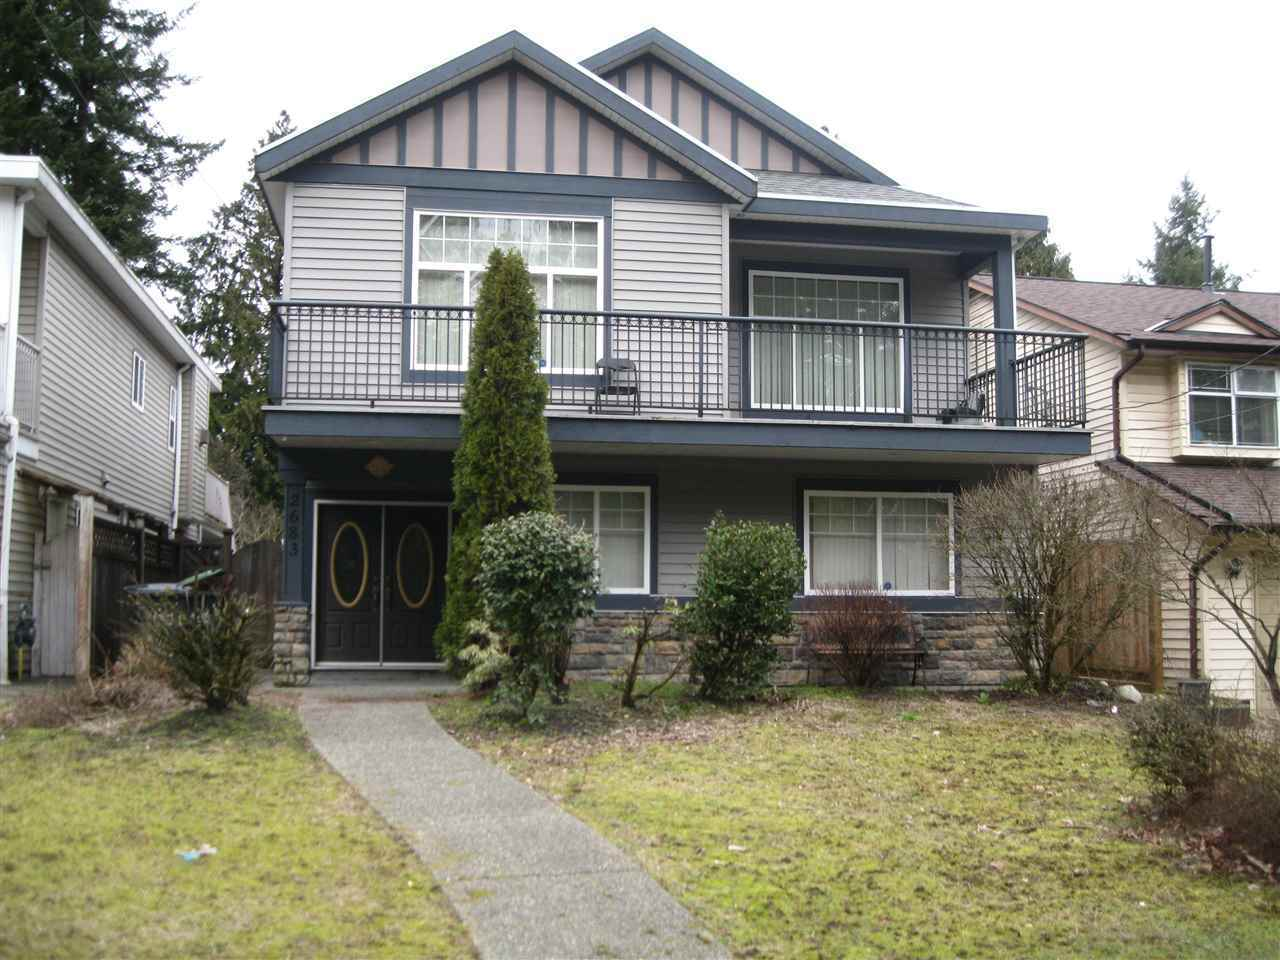 2683-kitchener-avenue-woodland-acres-pq-port-coquitlam-01 at 2683 Kitchener Avenue, Woodland Acres PQ, Port Coquitlam